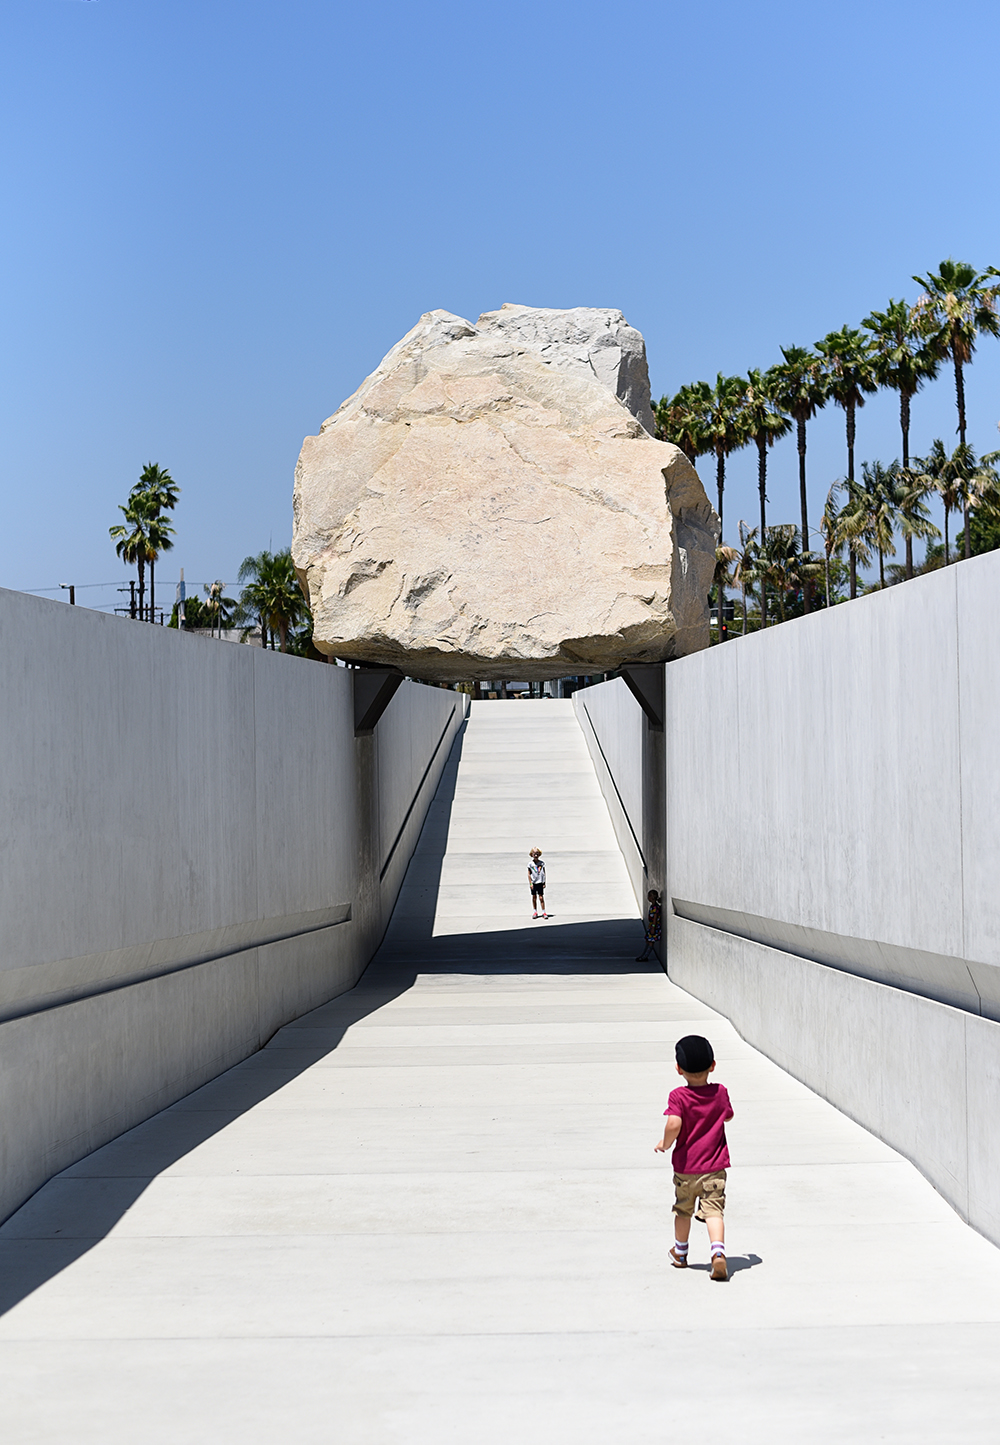 some highlights from our family trip to Los Angeles (with kids but no theme parks!)